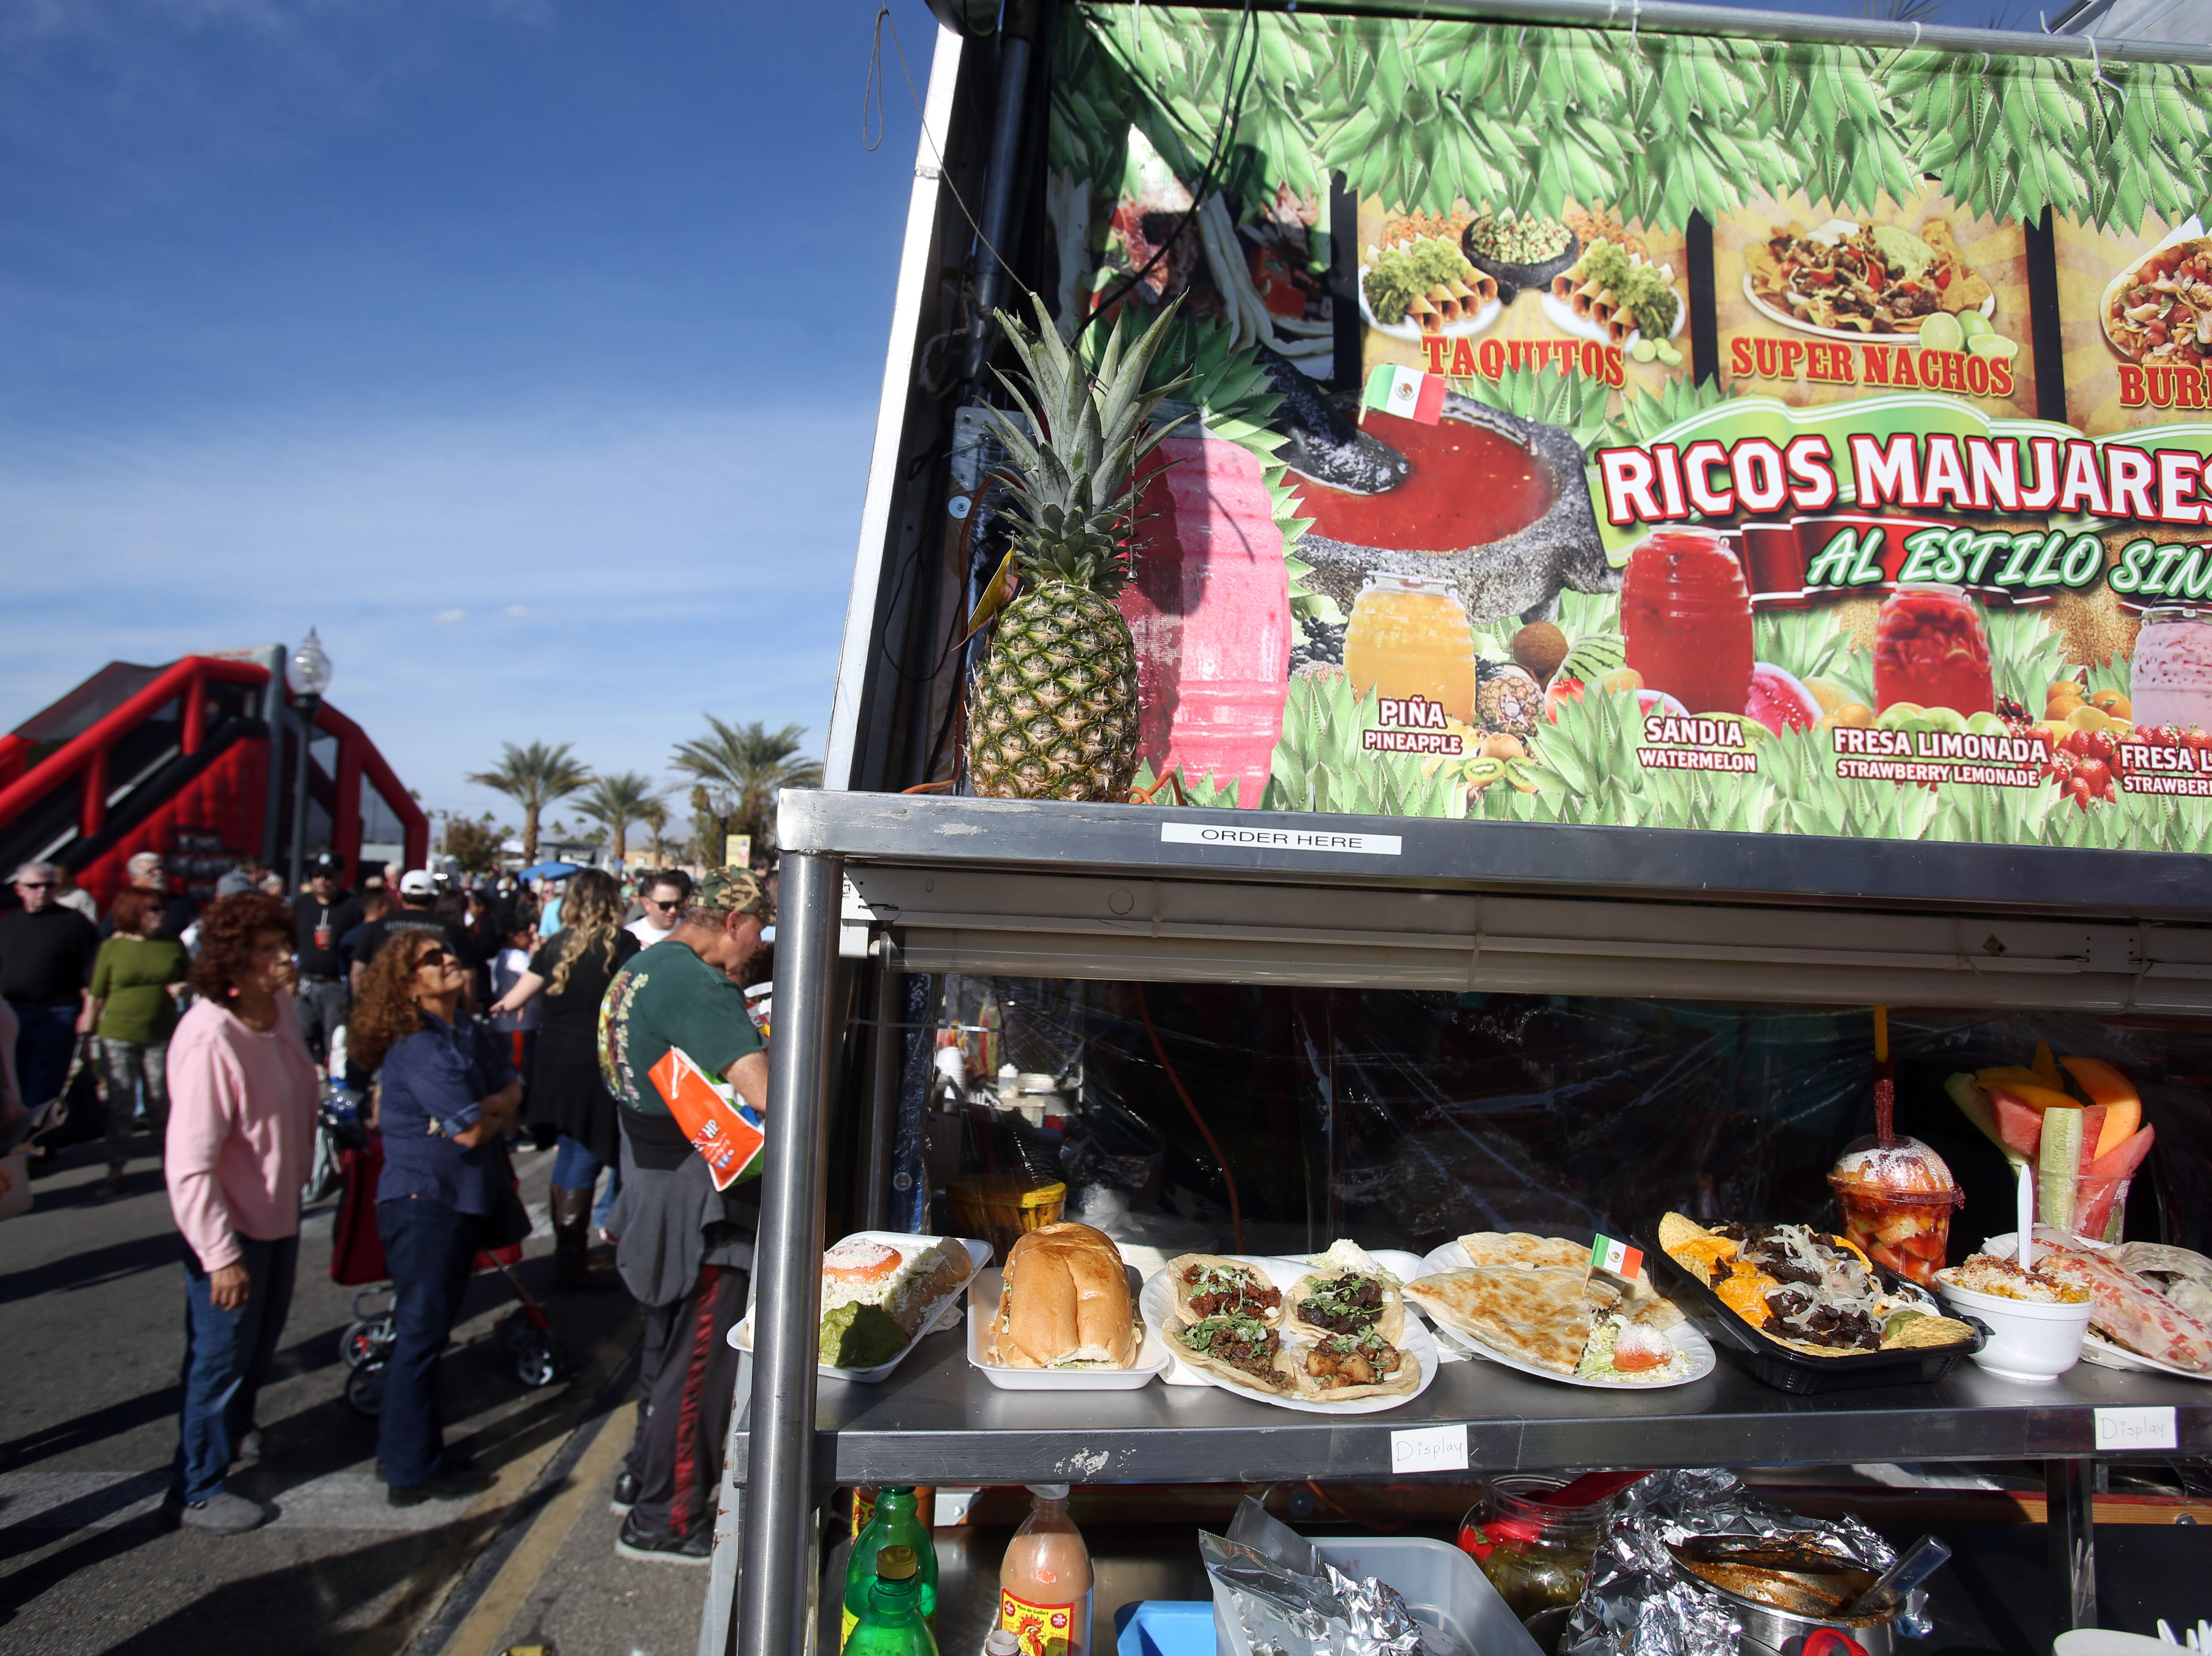 A display of non tamale foods on Saturday, December 1, 2018 during annual Indio Tamales Festival.